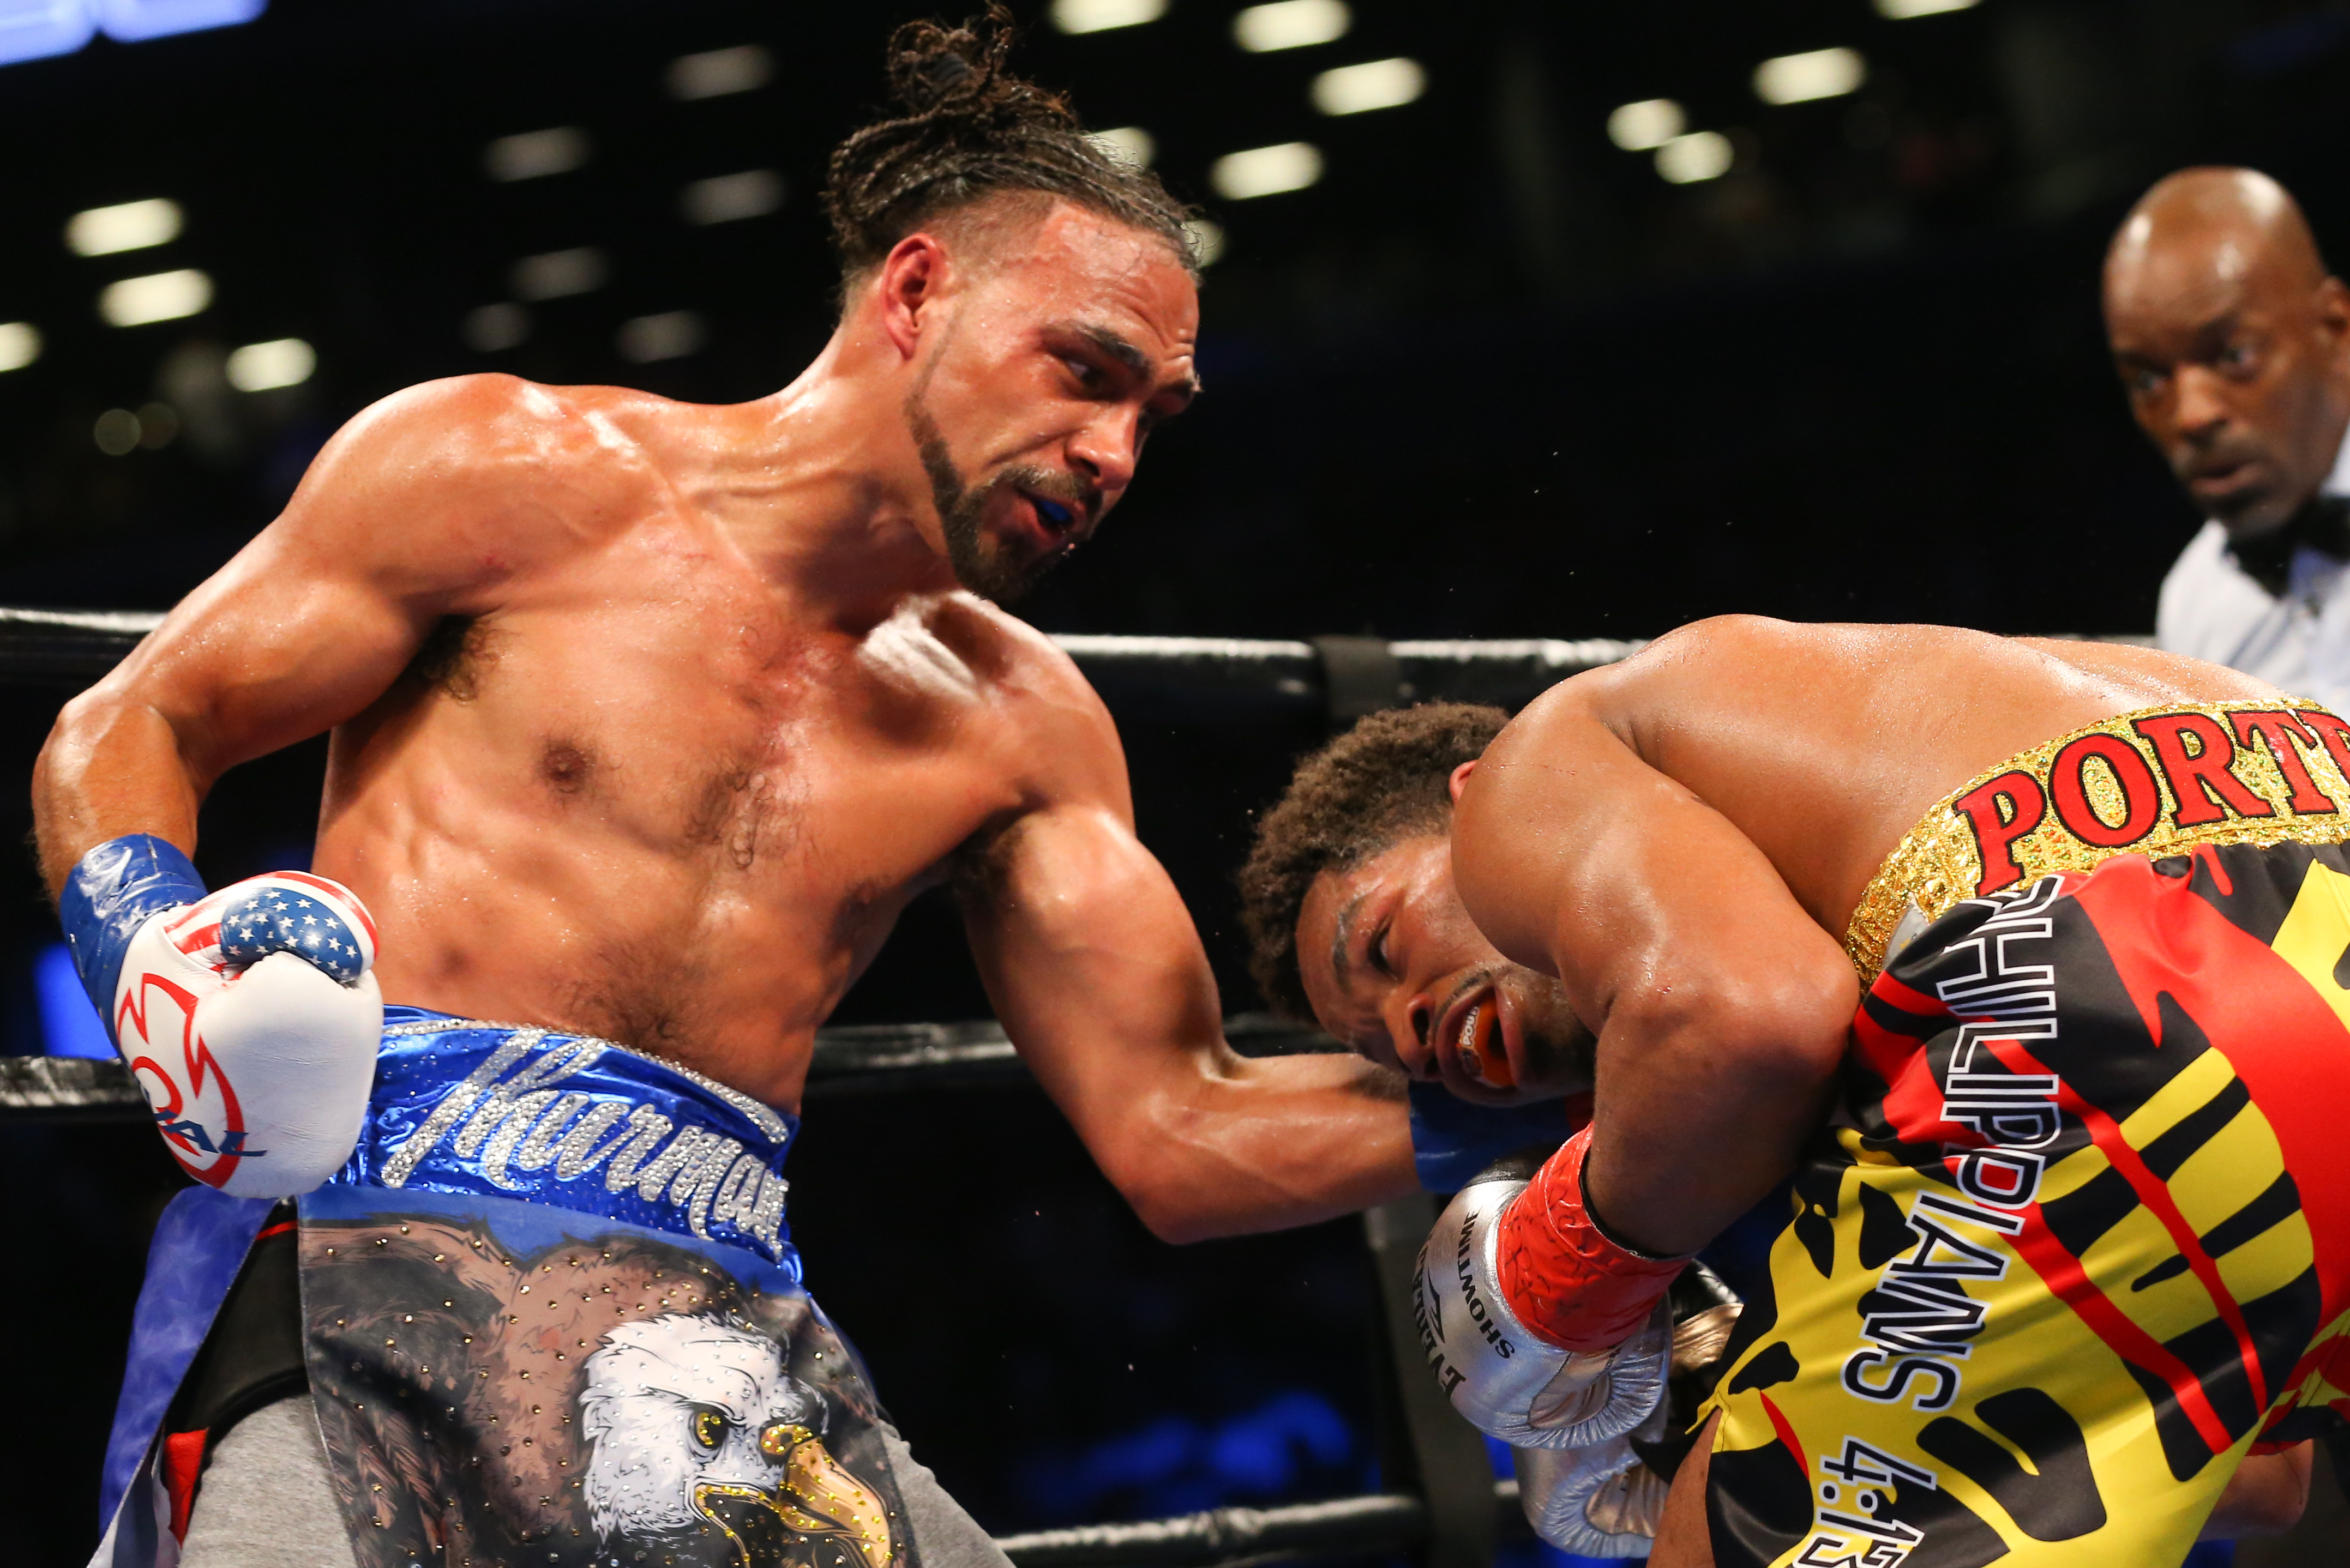 Do you think Floyd Mayweather would want any parts of Keith Thurman once he becomes marketable?